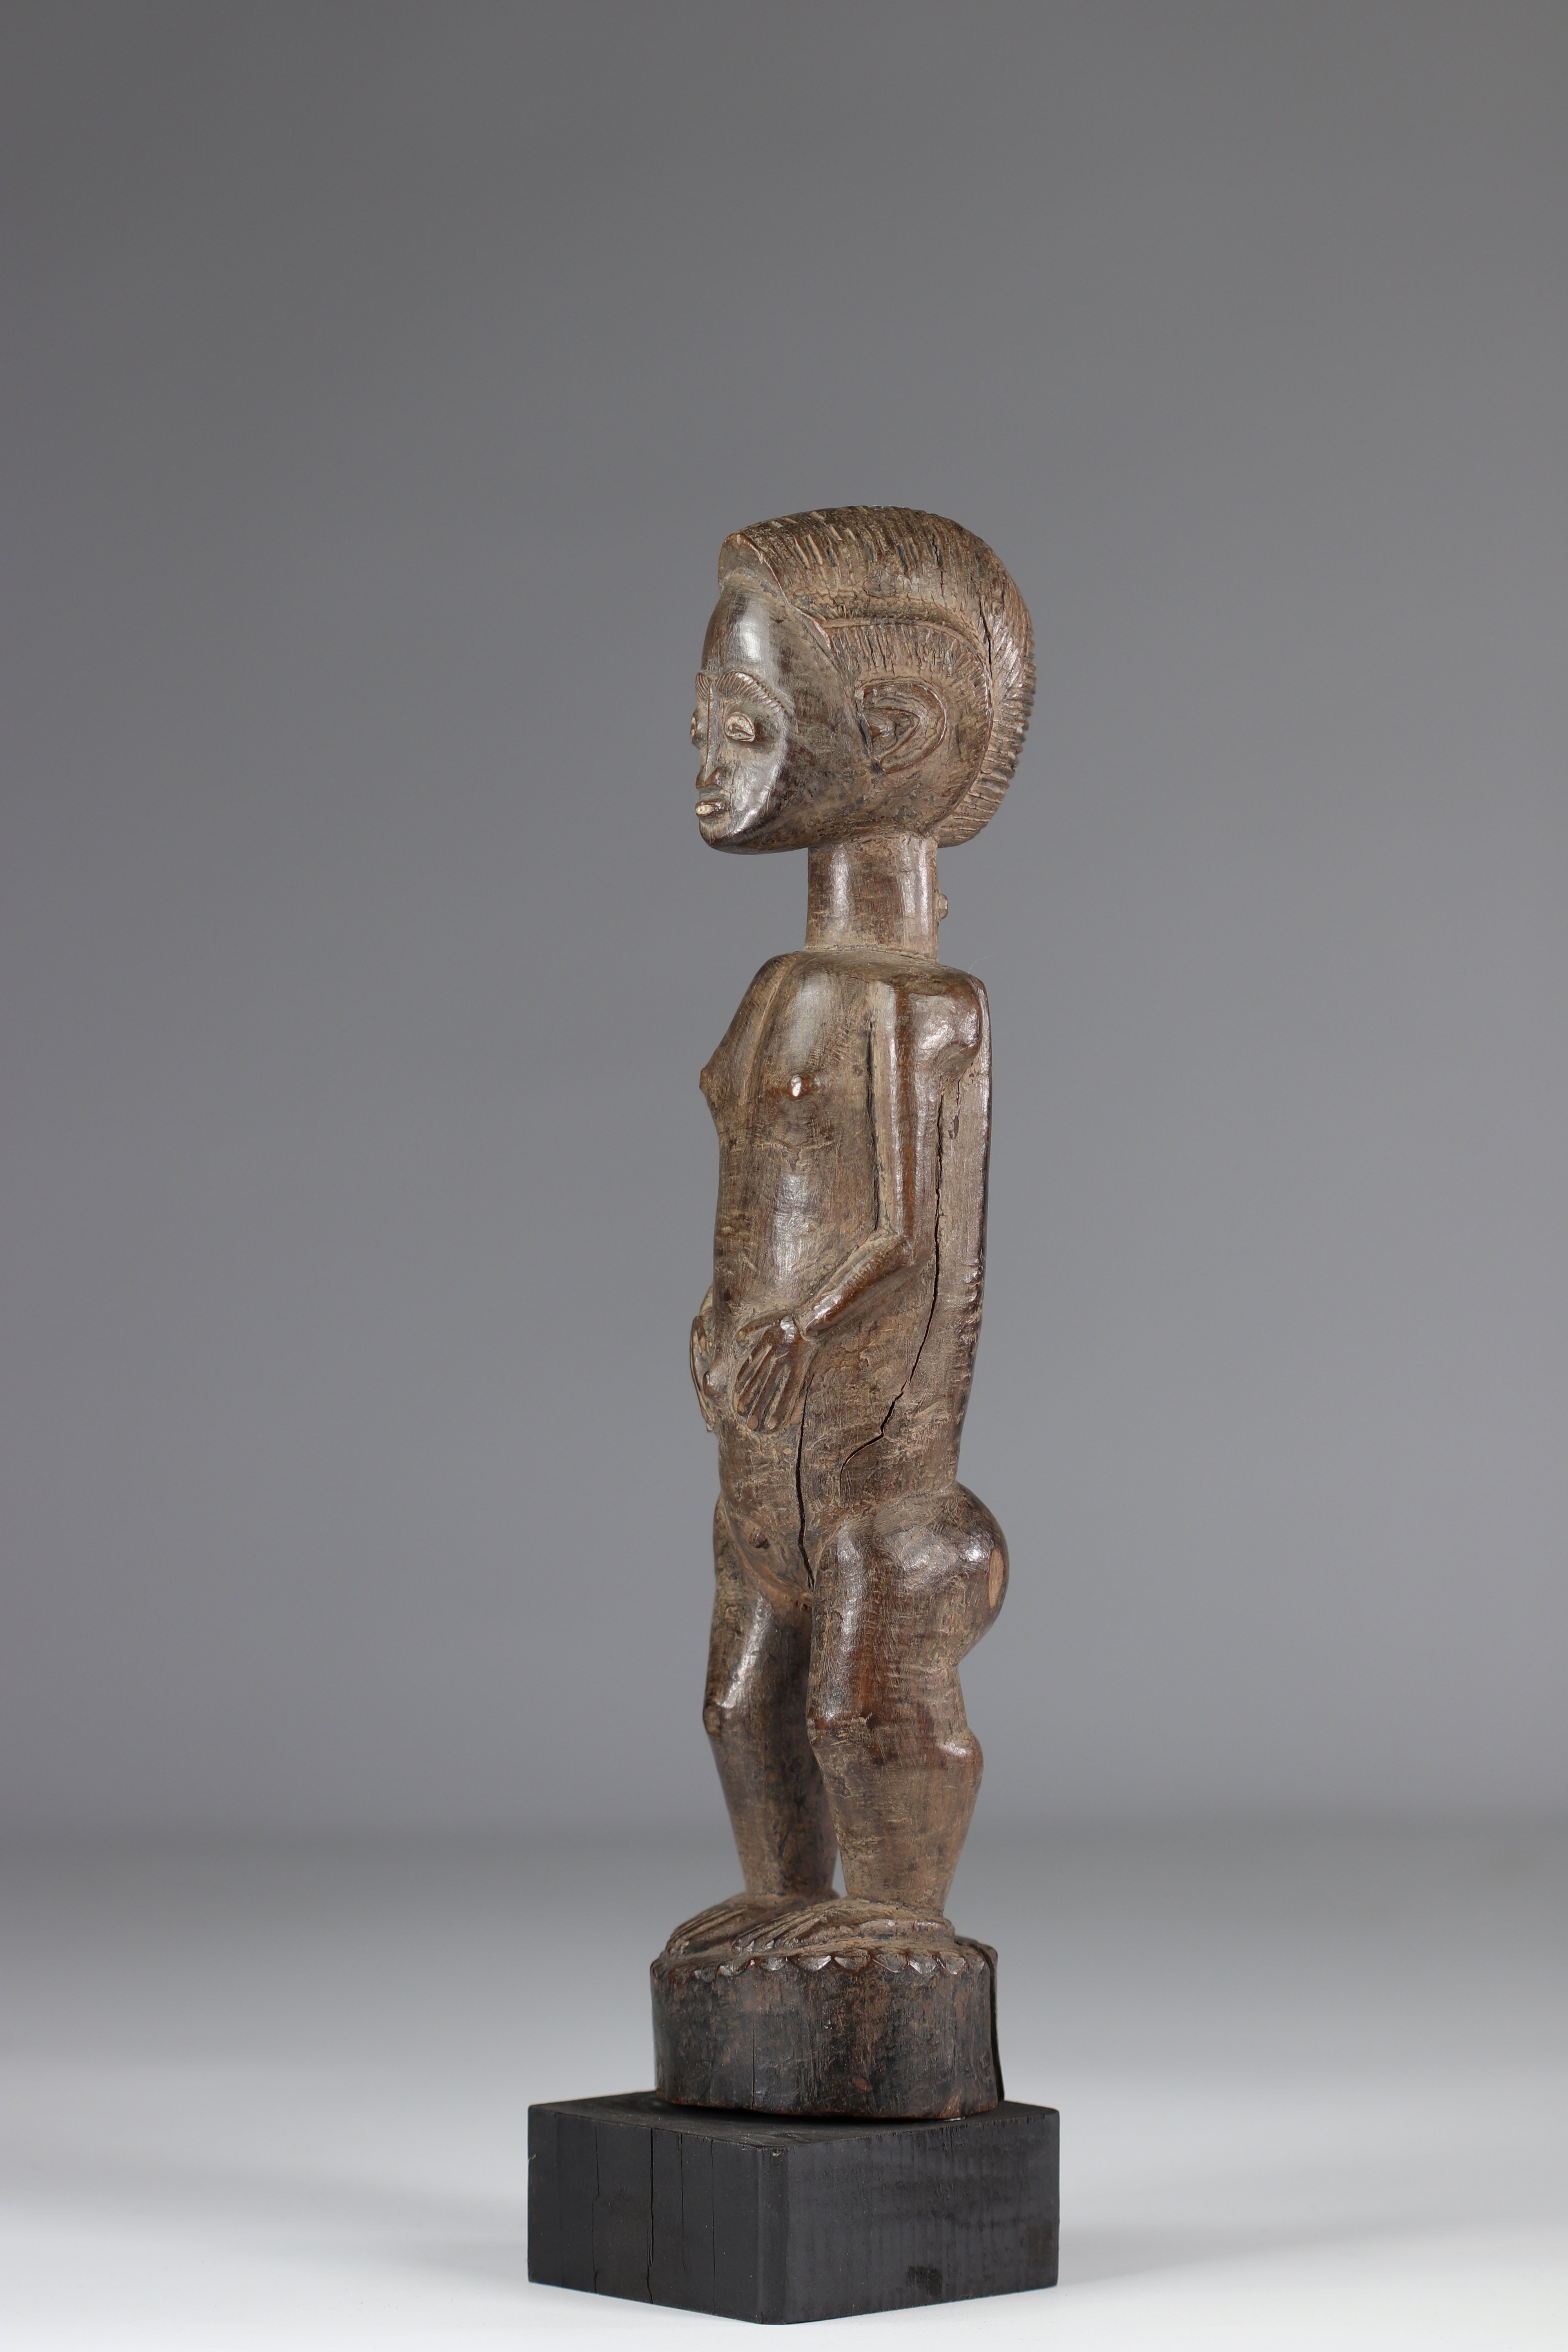 Baoule statuette in good condition mid 20th century - Image 3 of 5